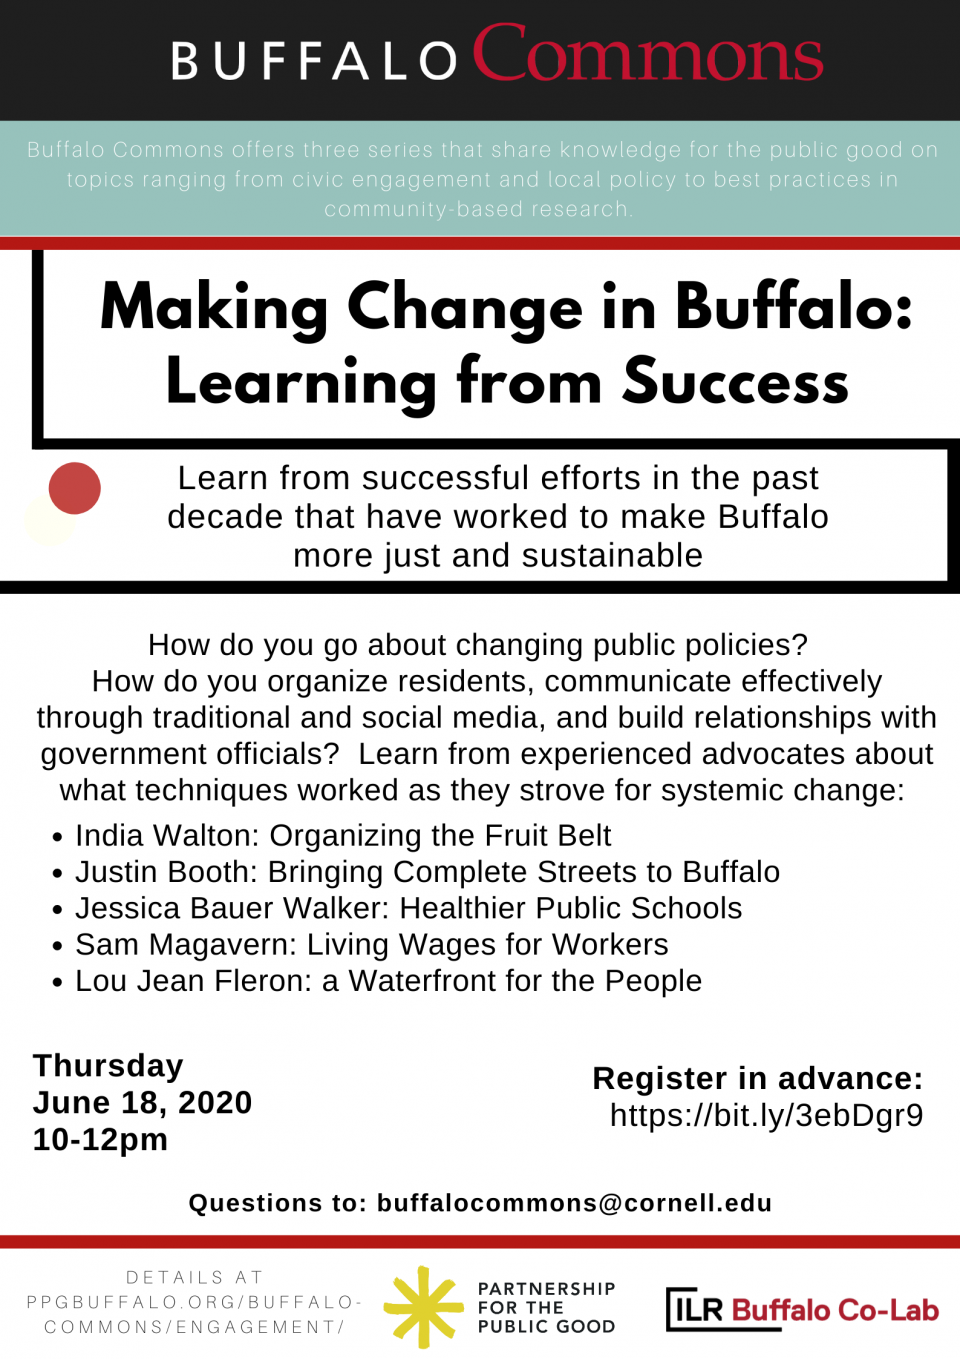 Buffalo Commons Workshop: Making Change in Buffalo: Learning from Success